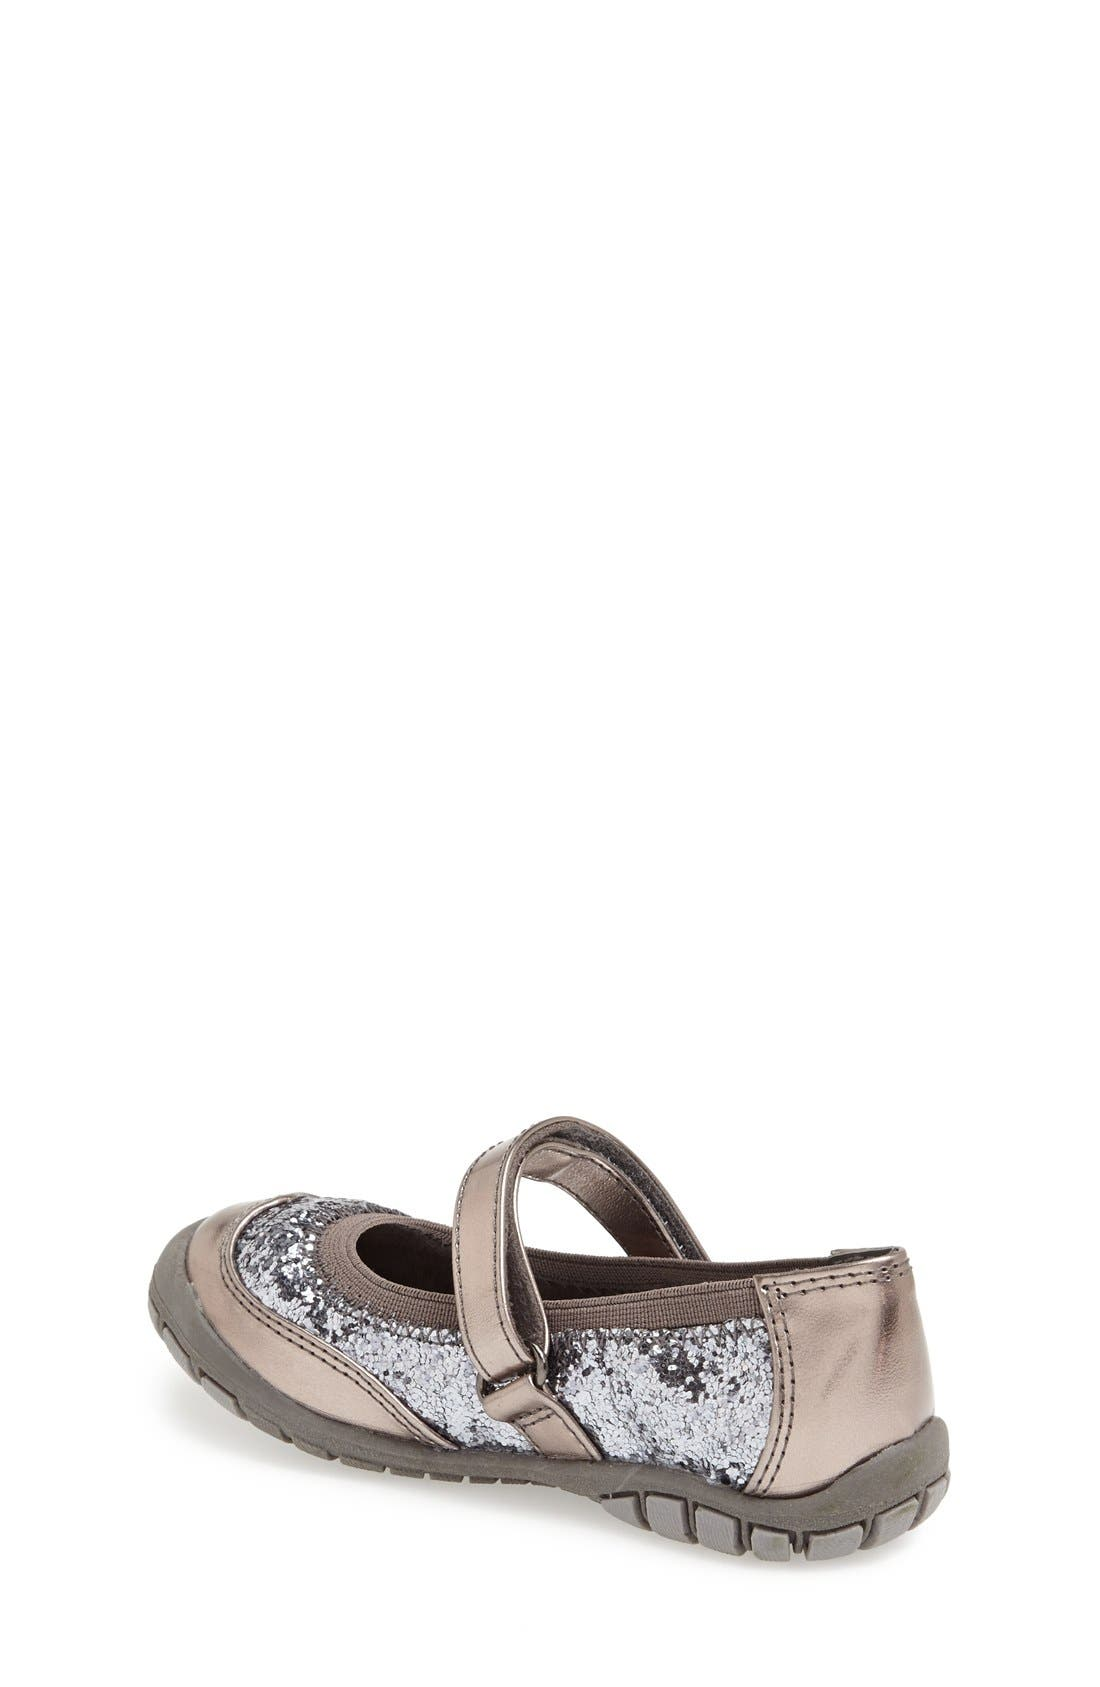 Kenneth Cole Reaction 'Leave My Bark' Mary Jane,                             Alternate thumbnail 2, color,                             Pewter